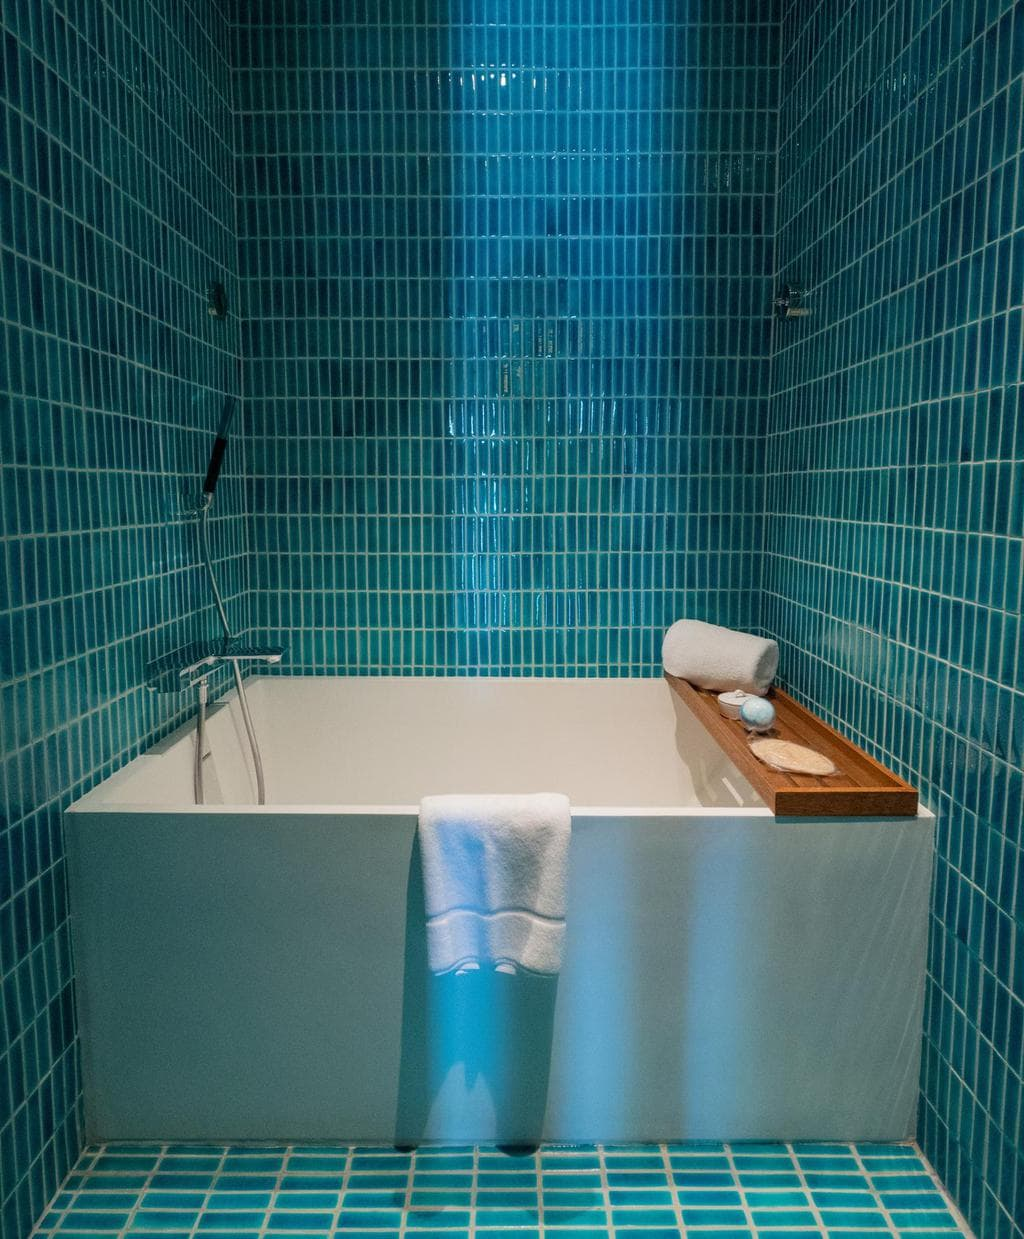 The lovely turquoise bathtub in the ocean suite